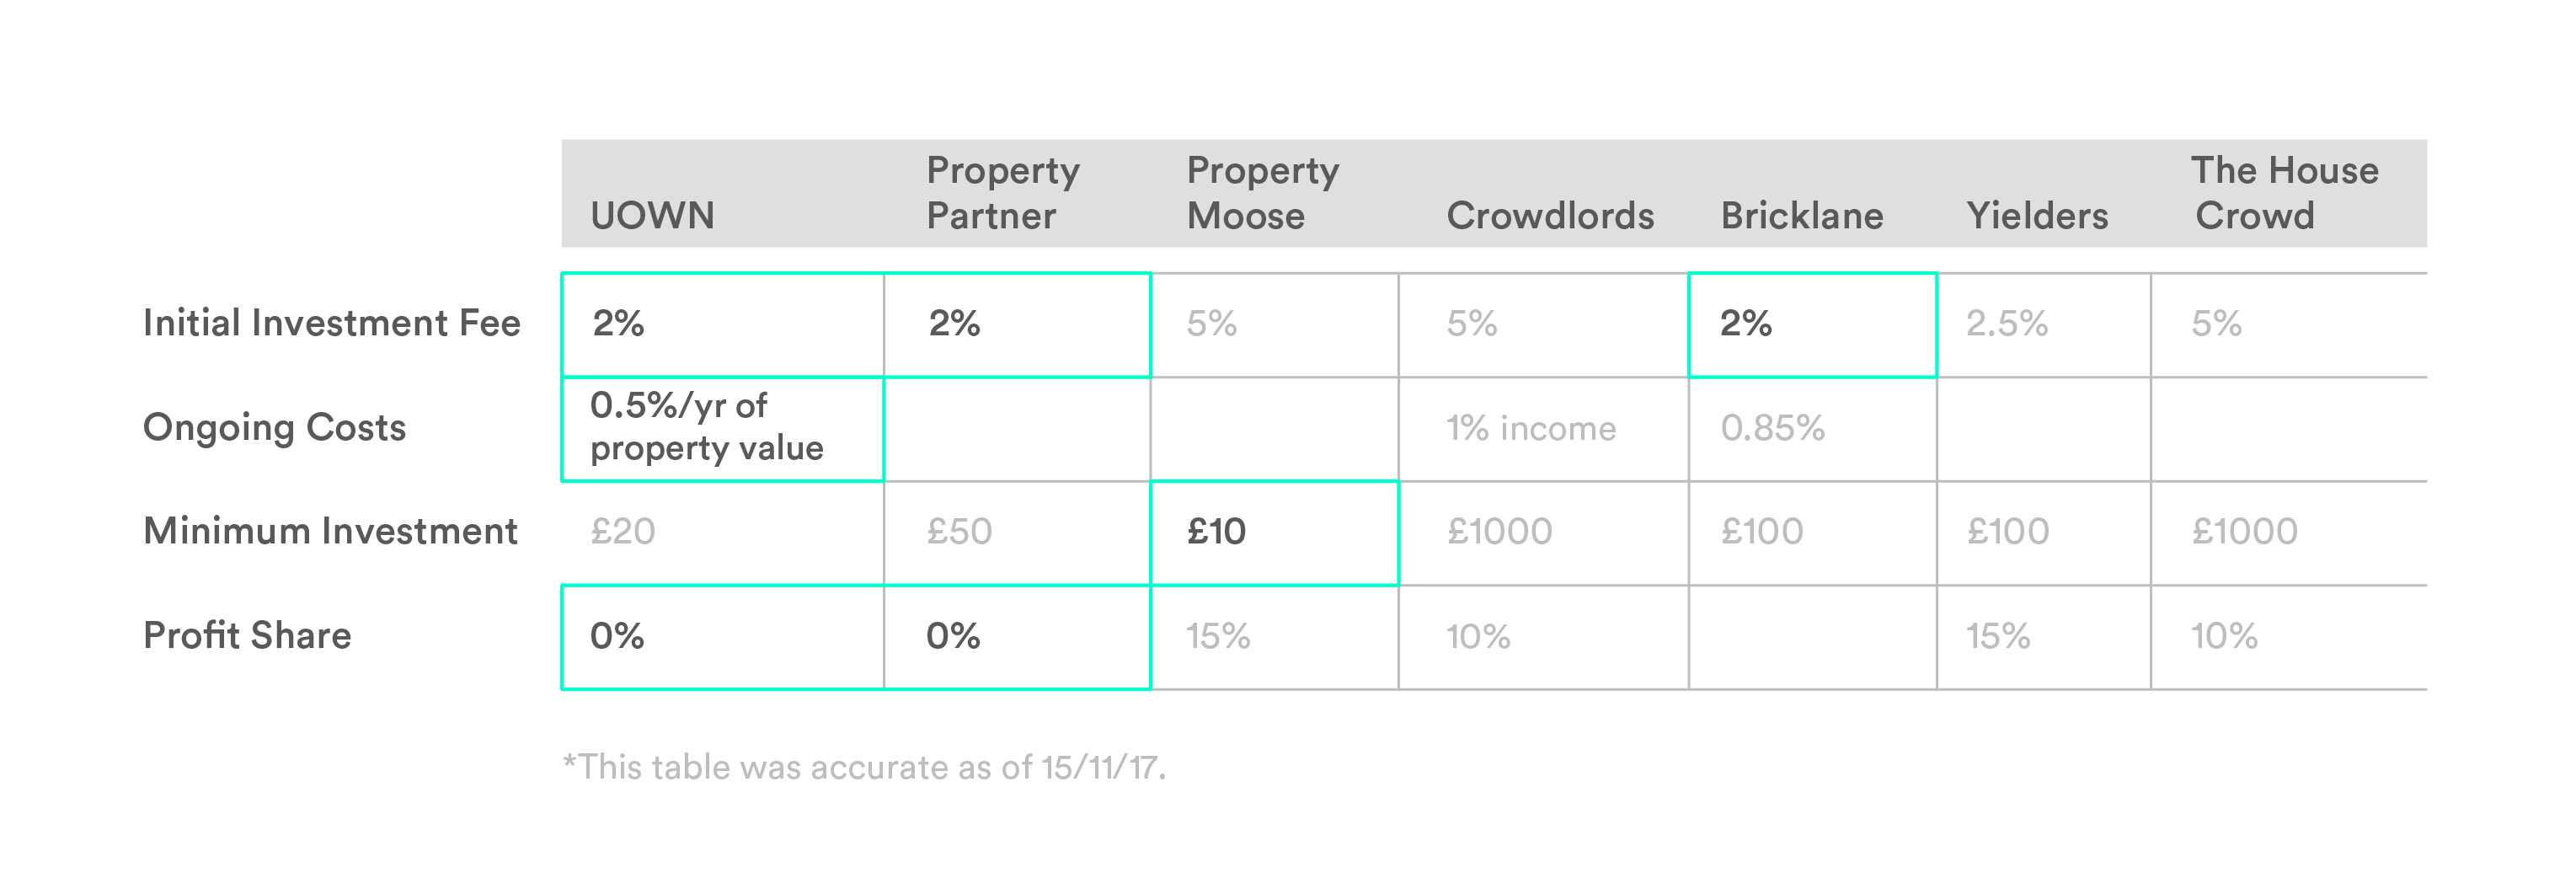 Comparison of Property Crowdfunding Industry Fees